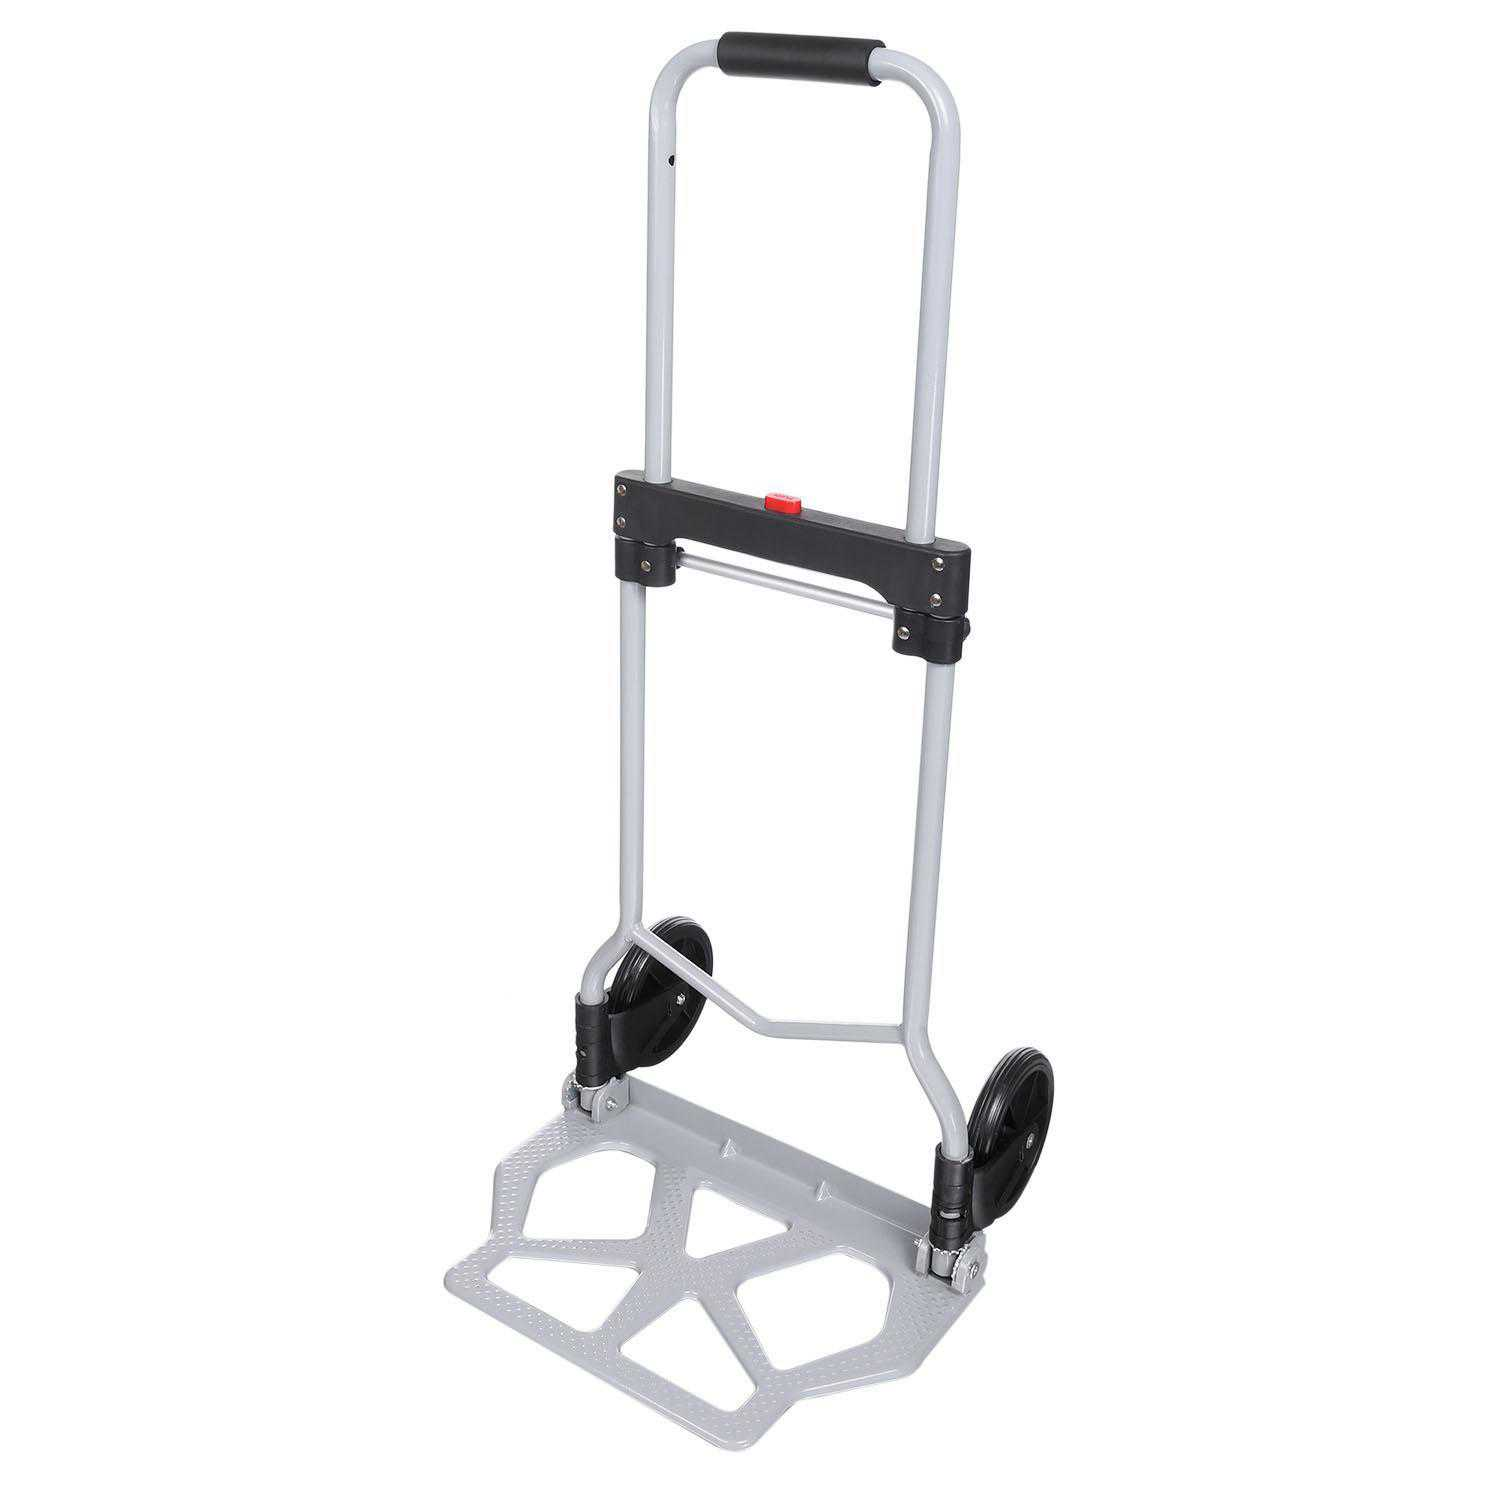 Portable Folding Hand Truck Dolly Luggage Carts, Silver, 220 lbs Capacity, Industrial/Travel/Shopping BYE